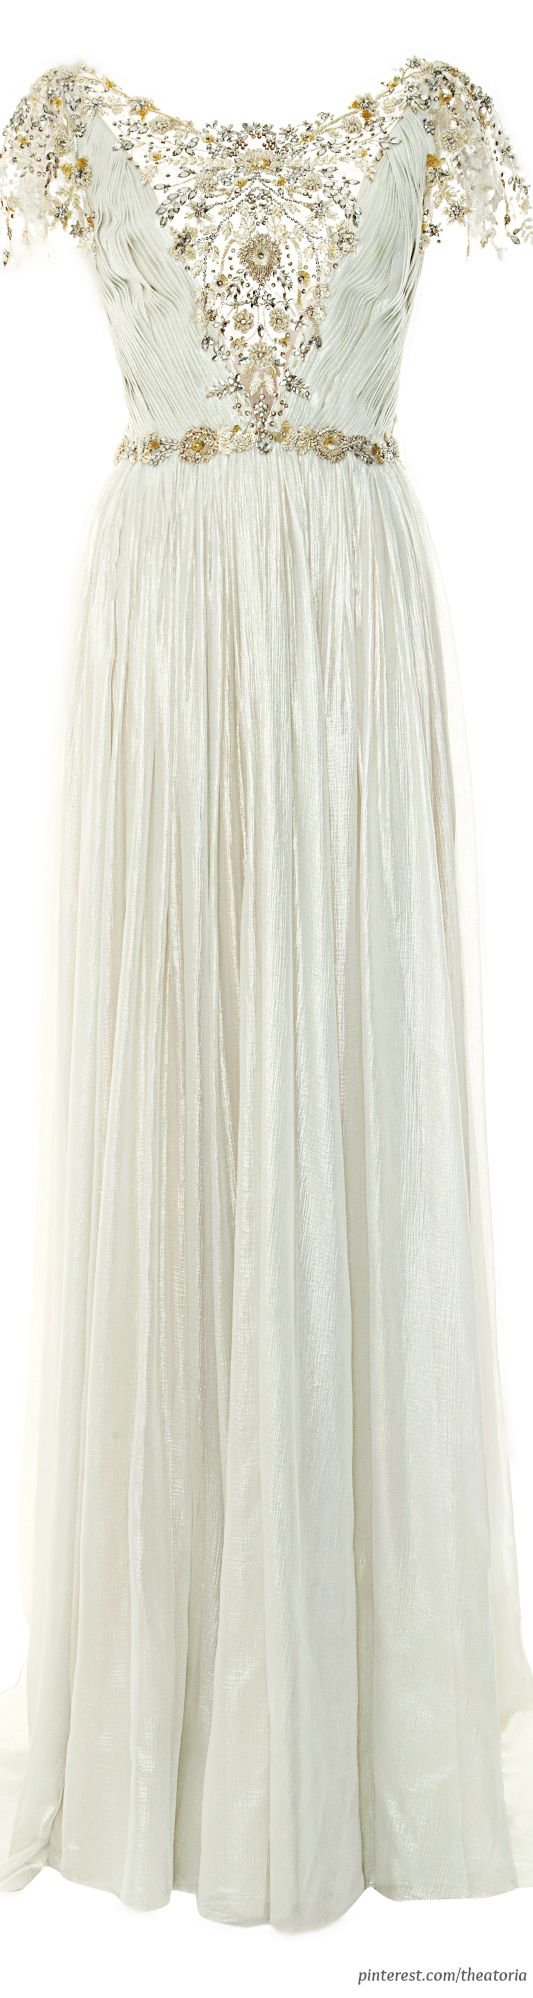 [Elethea] Marchesa ● Pre-Fall 2014, Pleated Silver Foil Chiffon Gown